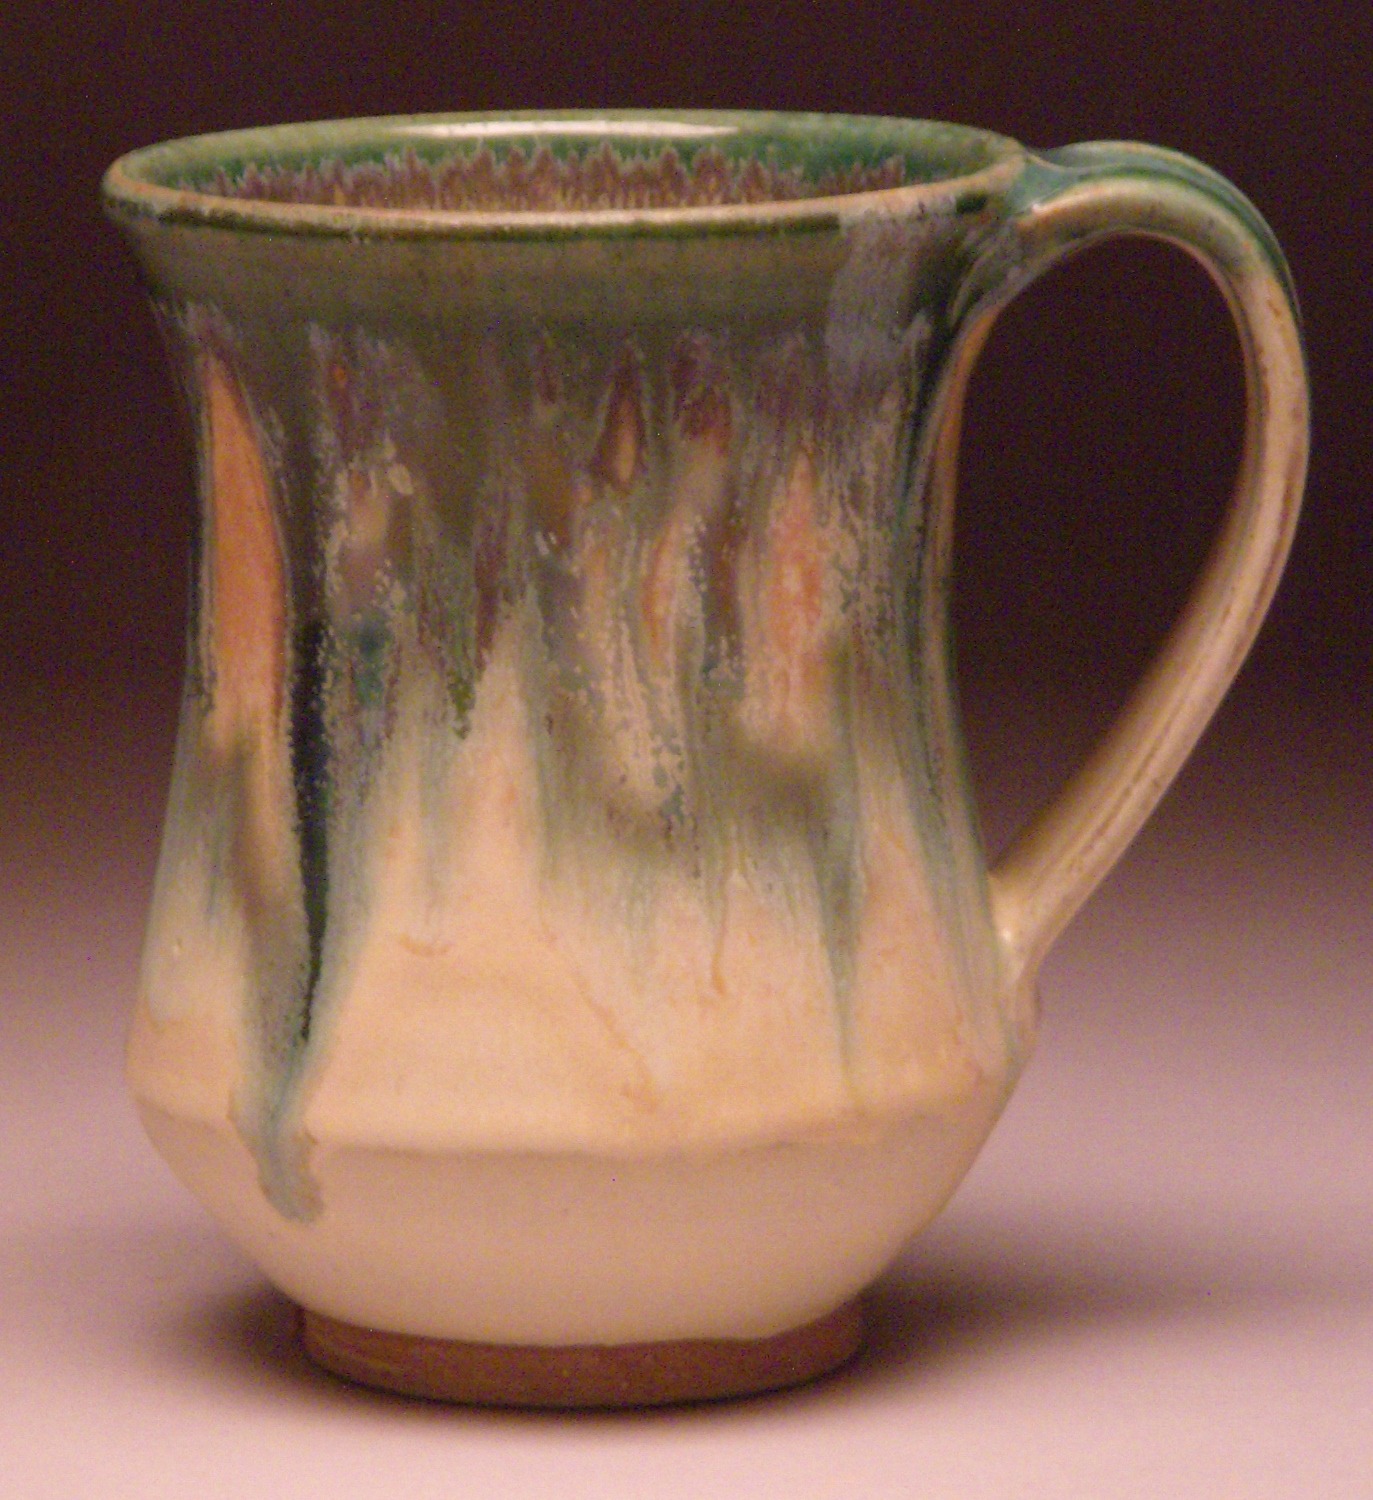 Cup, 4.75x3.5